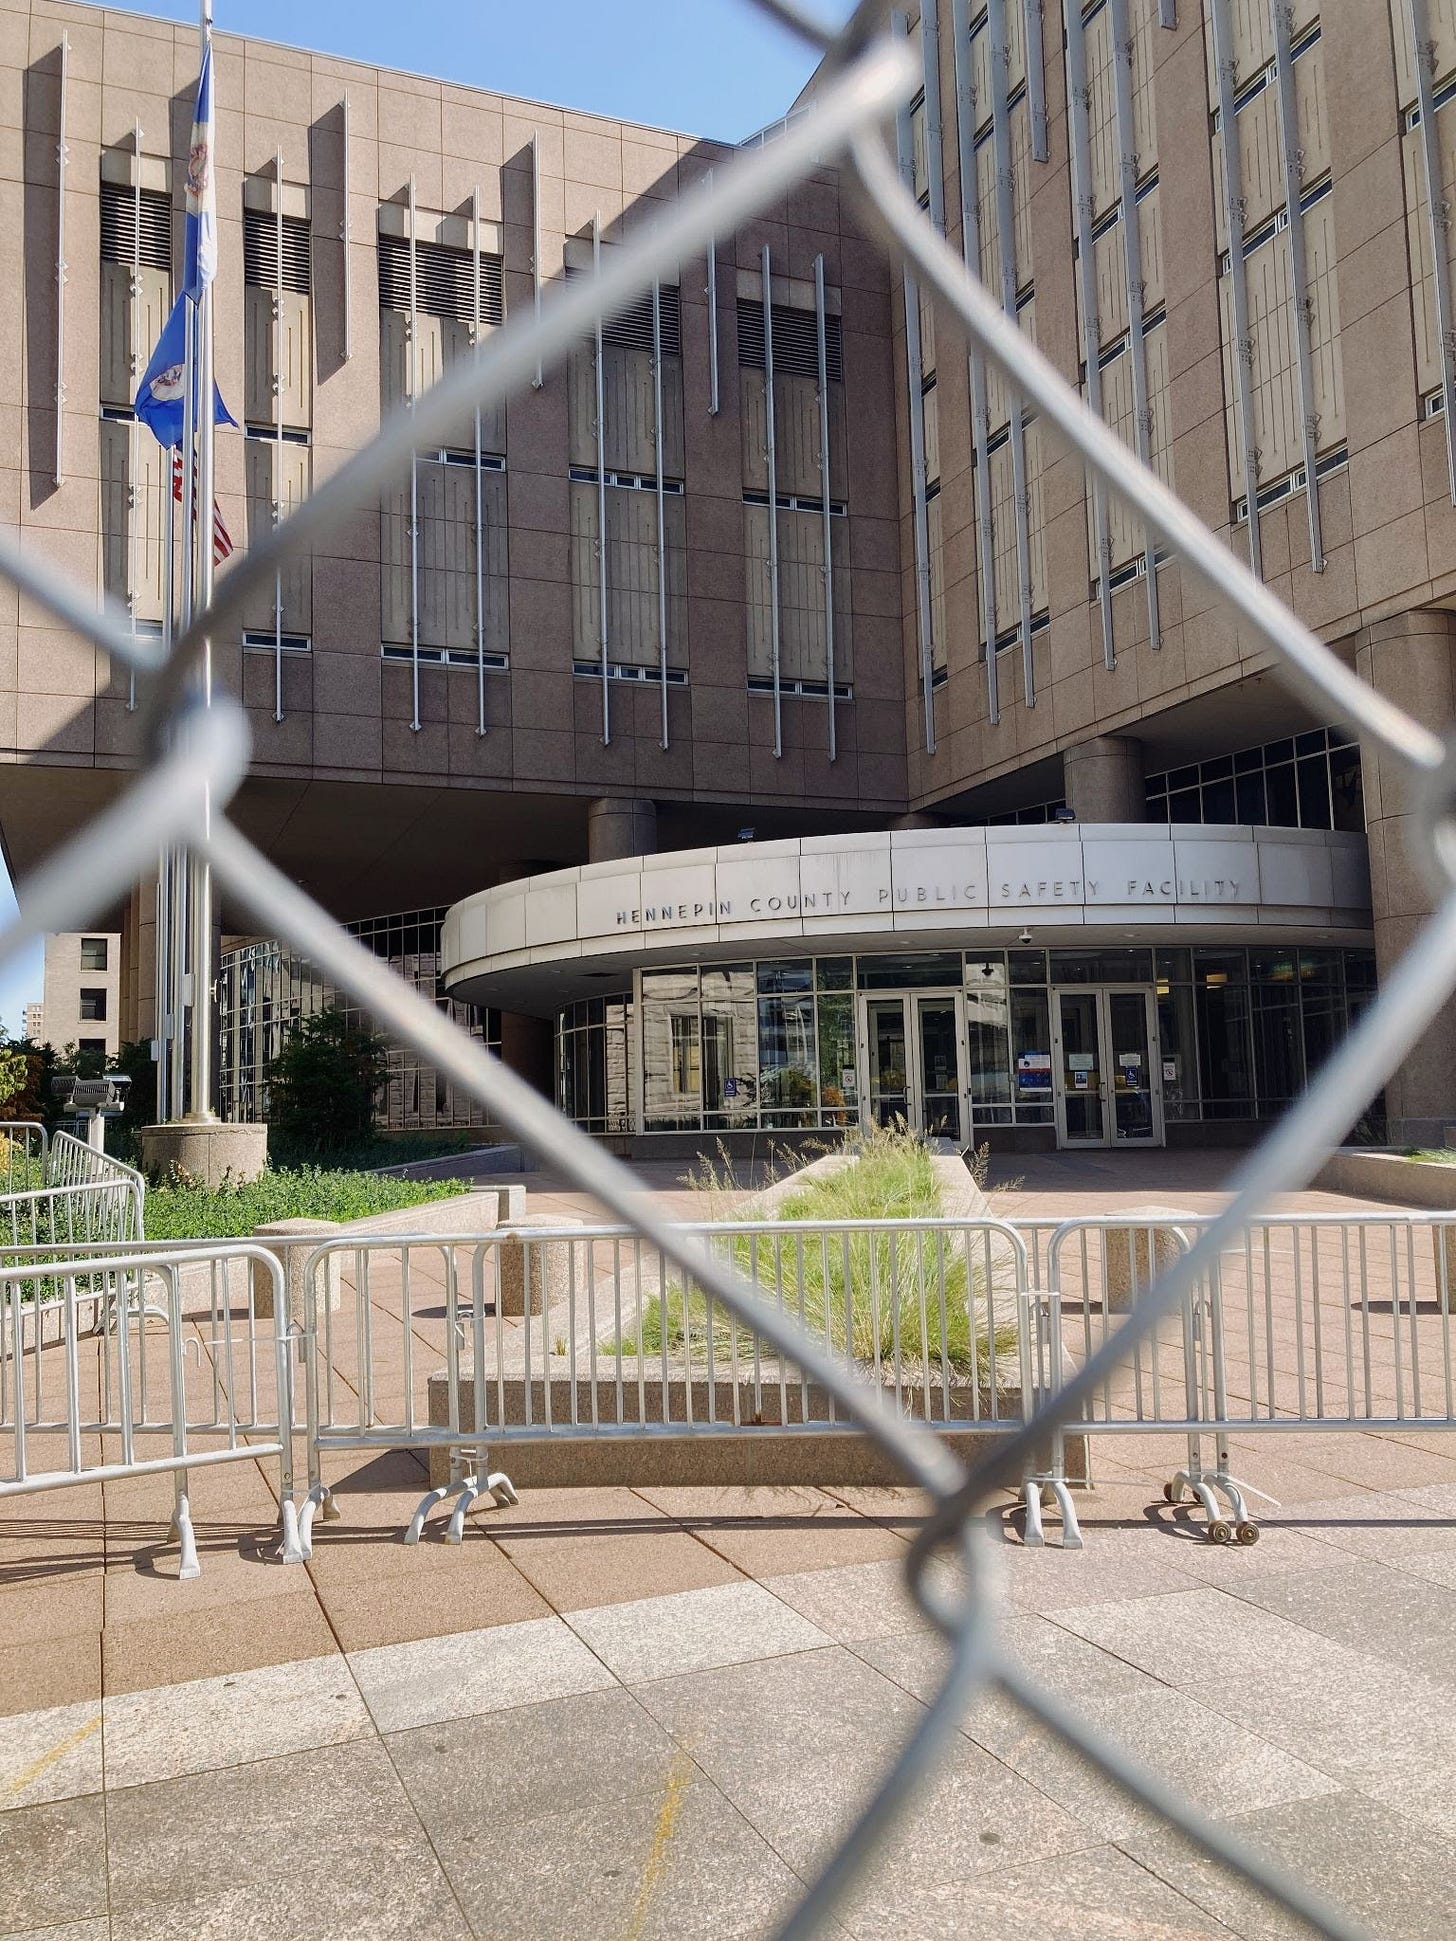 The entrance to the Hennepin County Public Safety facility, a beige brutalist building with skinny windows and metal bars